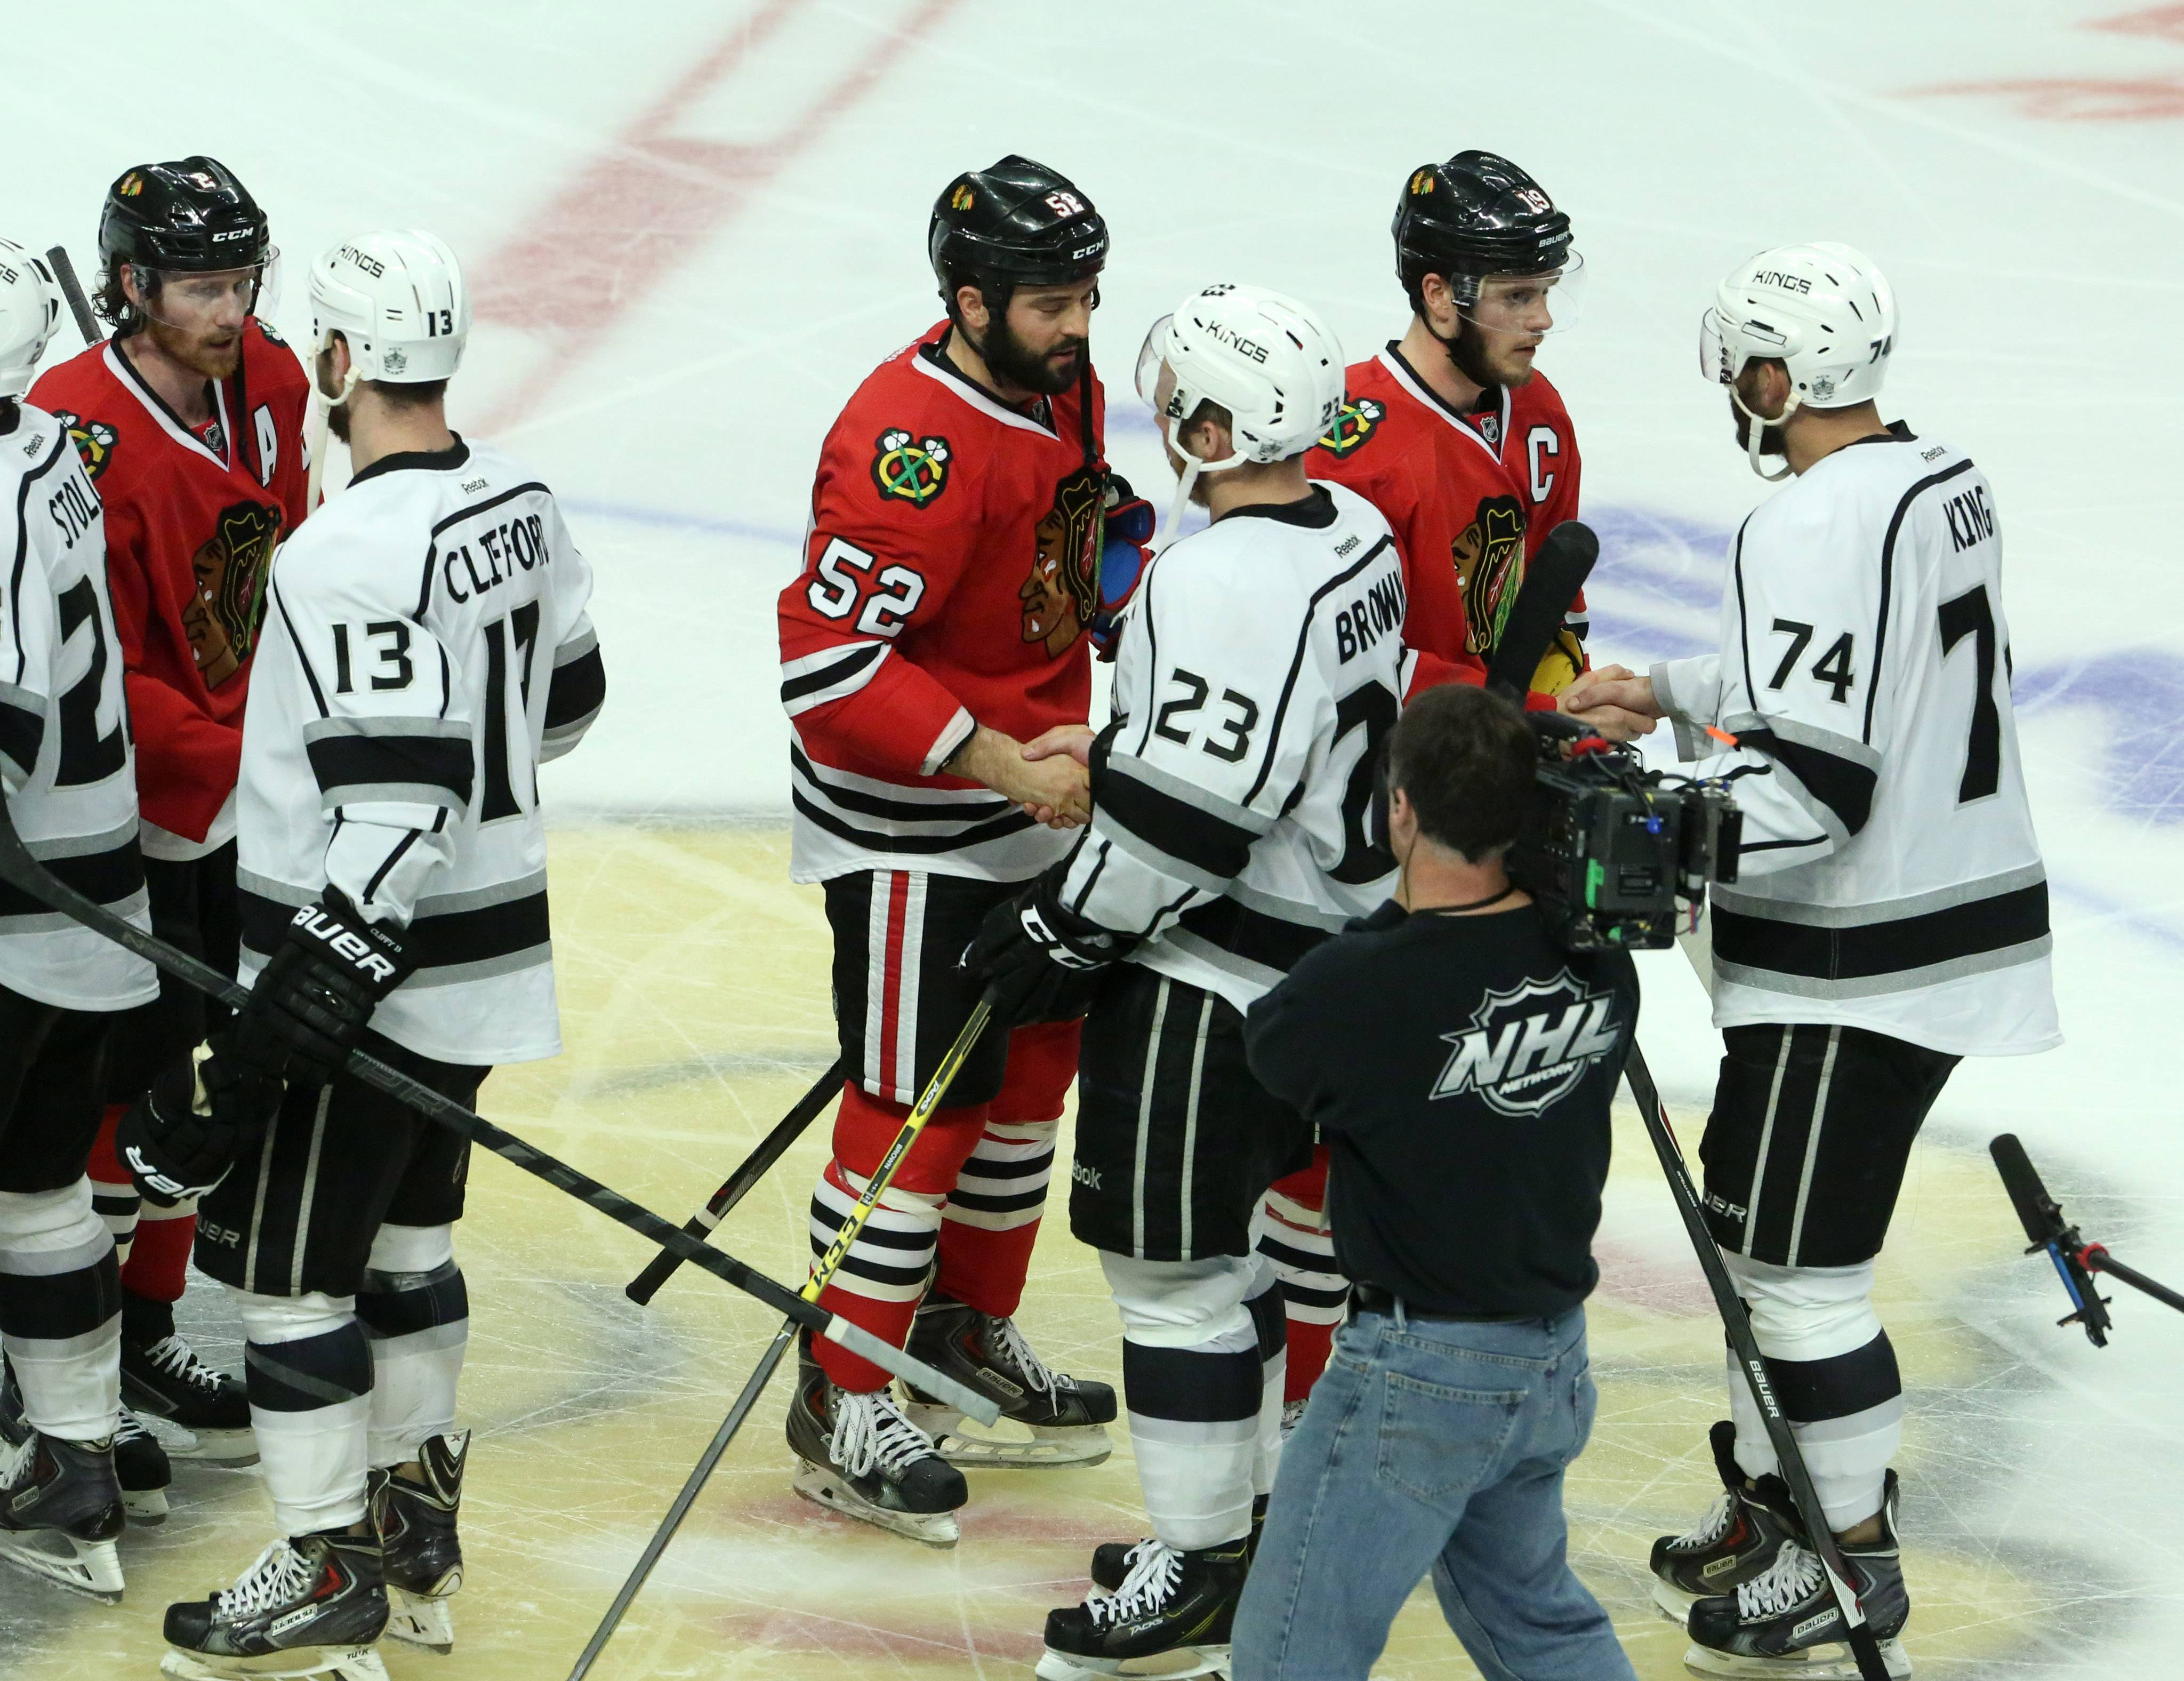 Blackhawks captain Jonathan Toews shakes the hand of Los Angeles Kings left wing Dwight King, and Hawks winger Brandon Bollig shakes the hand of Kings winger Dustin Brown after Sunday's Game 7 at United Center.